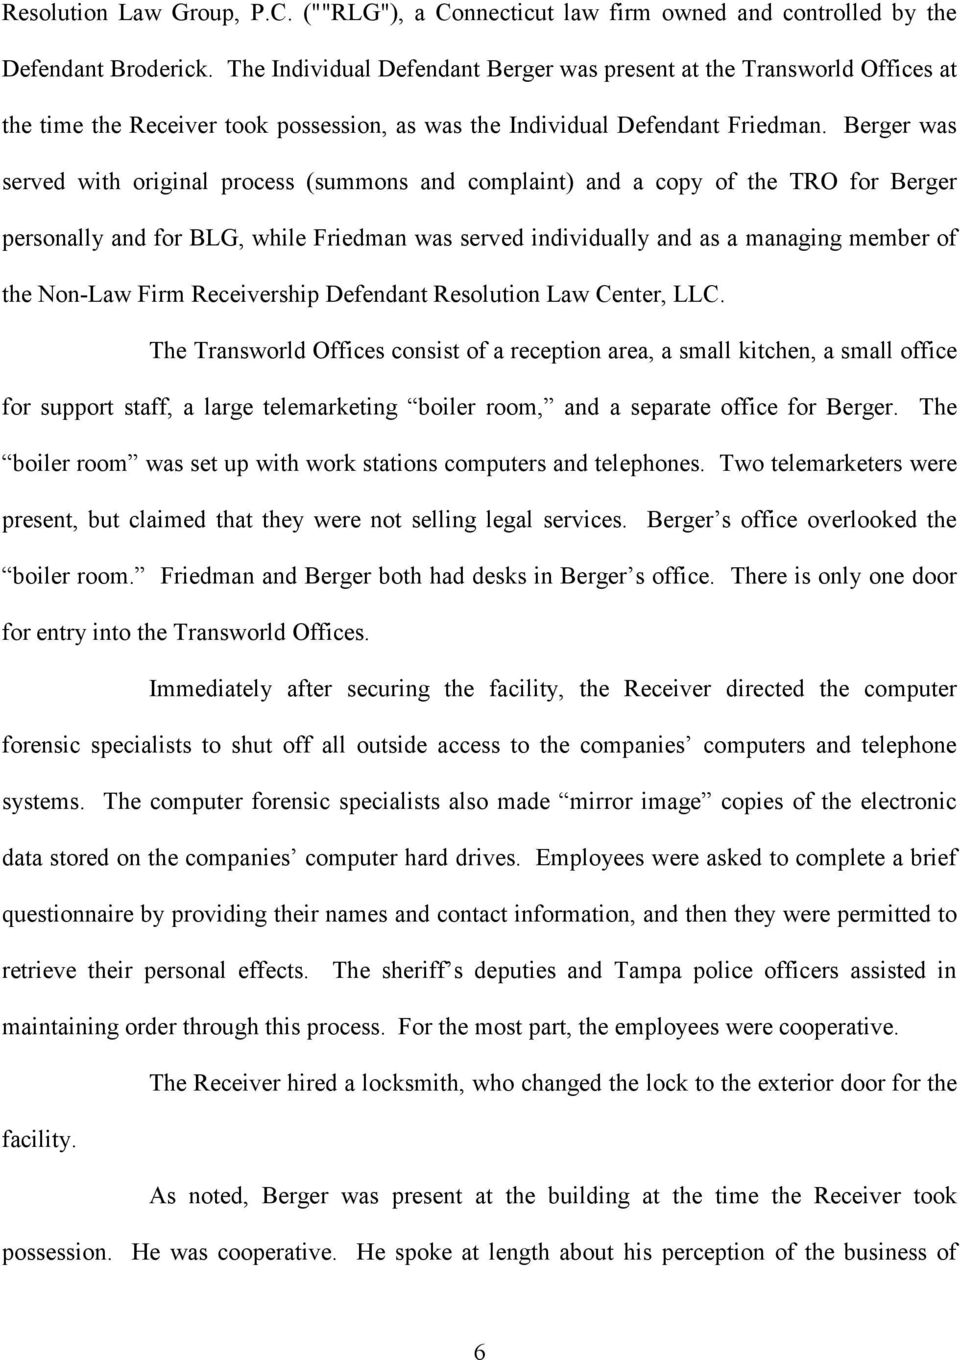 Berger was served with original process (summons and complaint) and a copy of the TRO for Berger personally and for BLG, while Friedman was served individually and as a managing member of the Non-Law